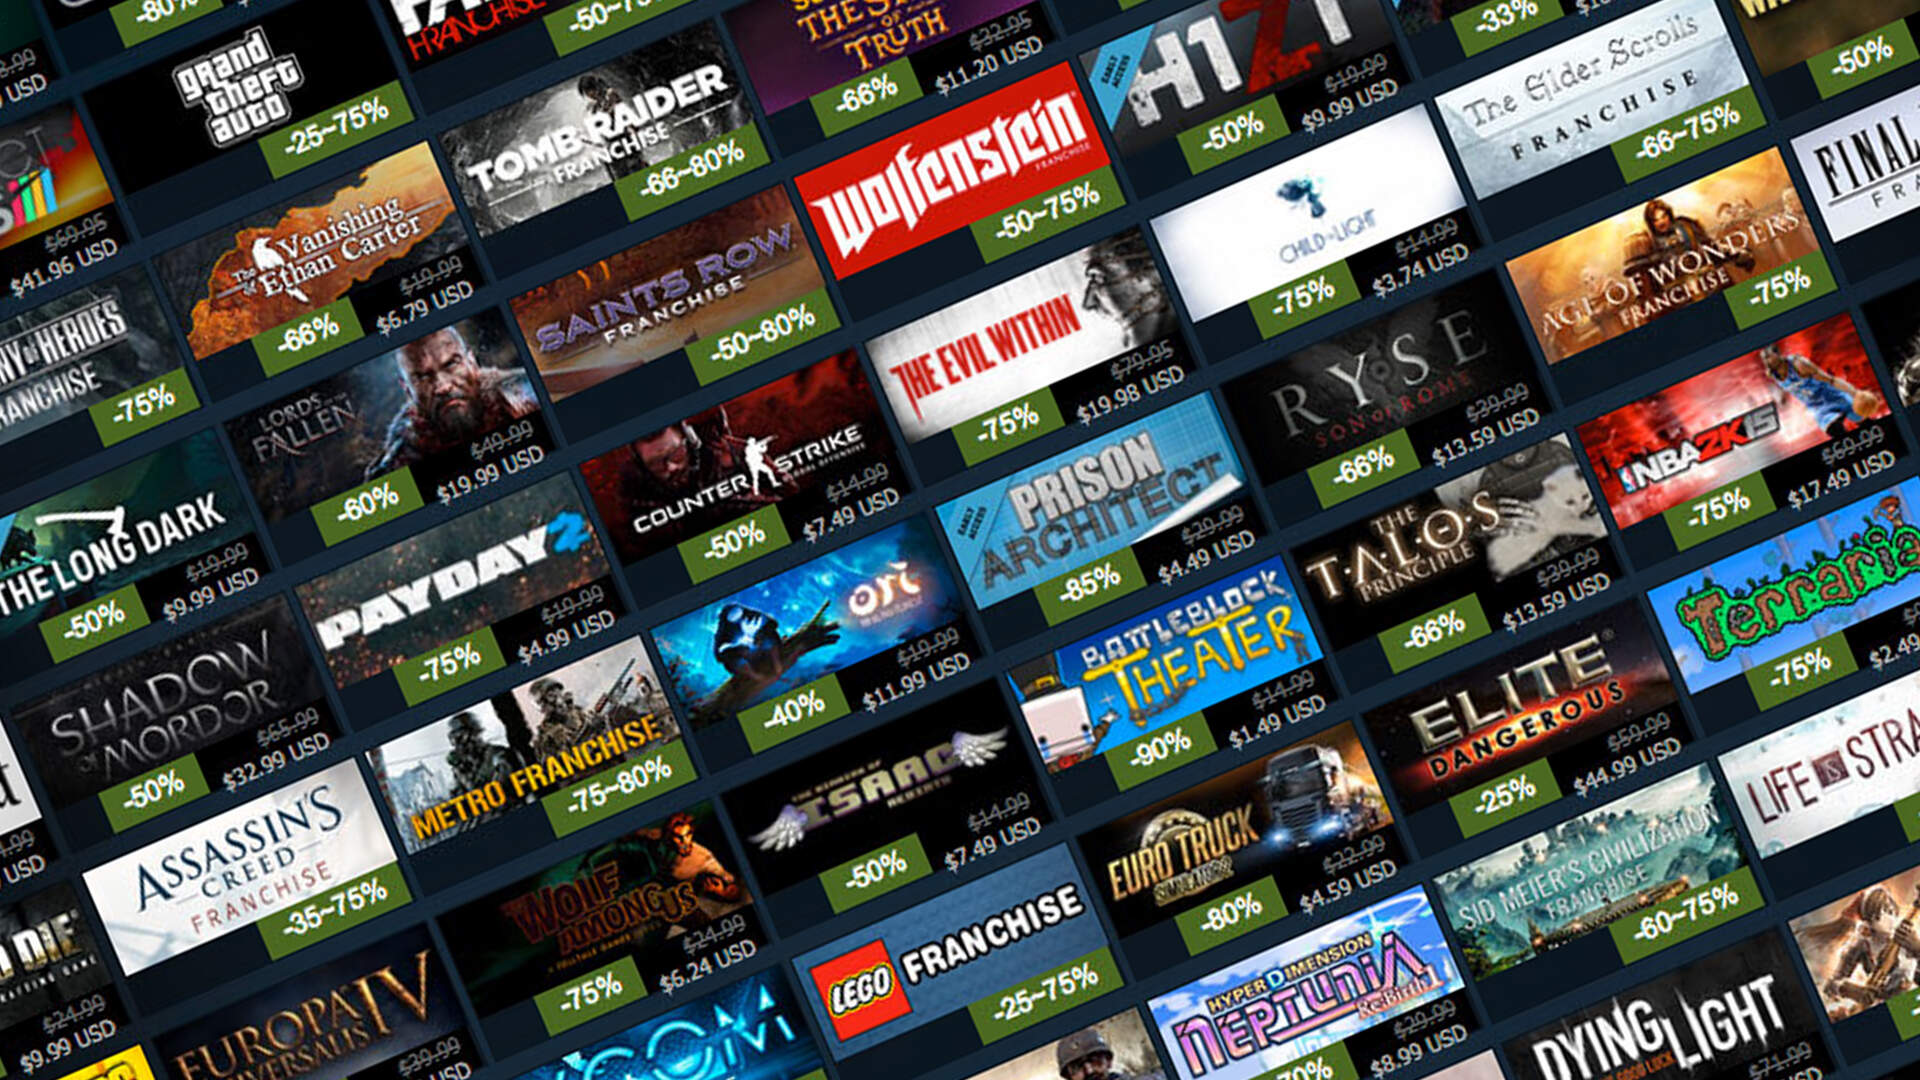 The Steam Halloween, Black Friday, and Winter Sale Dates Have Reportedly Leaked